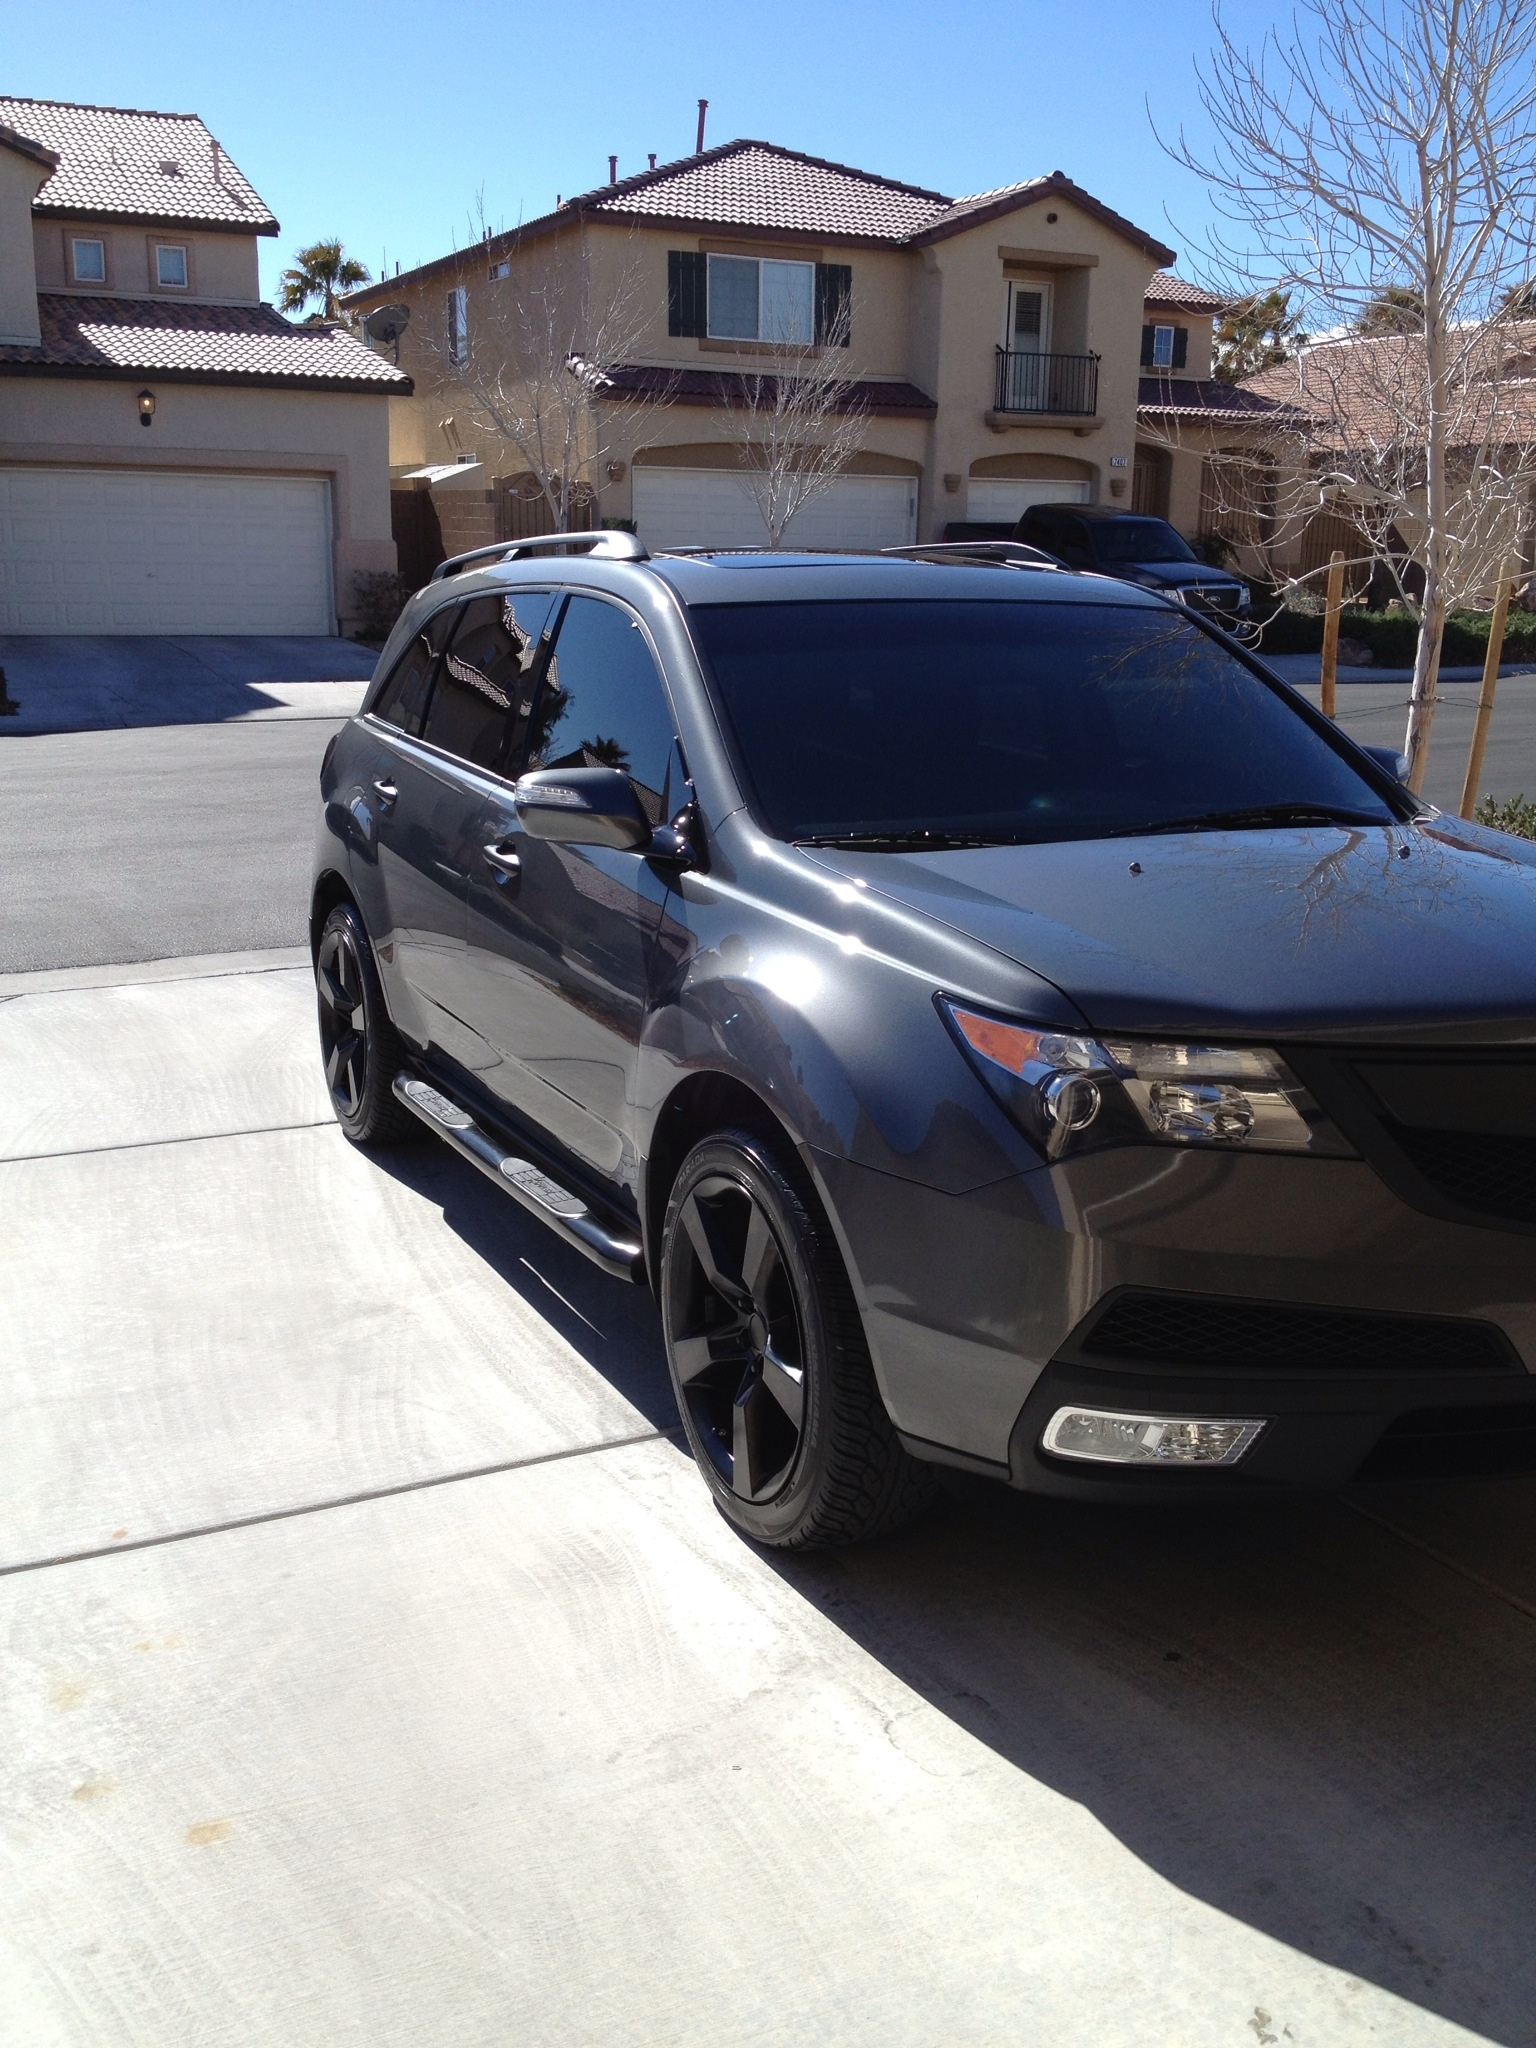 Pics Of 2nd Generation Mdx With Aftermarket Rims Page 18 Acura Mdx Suv Forums